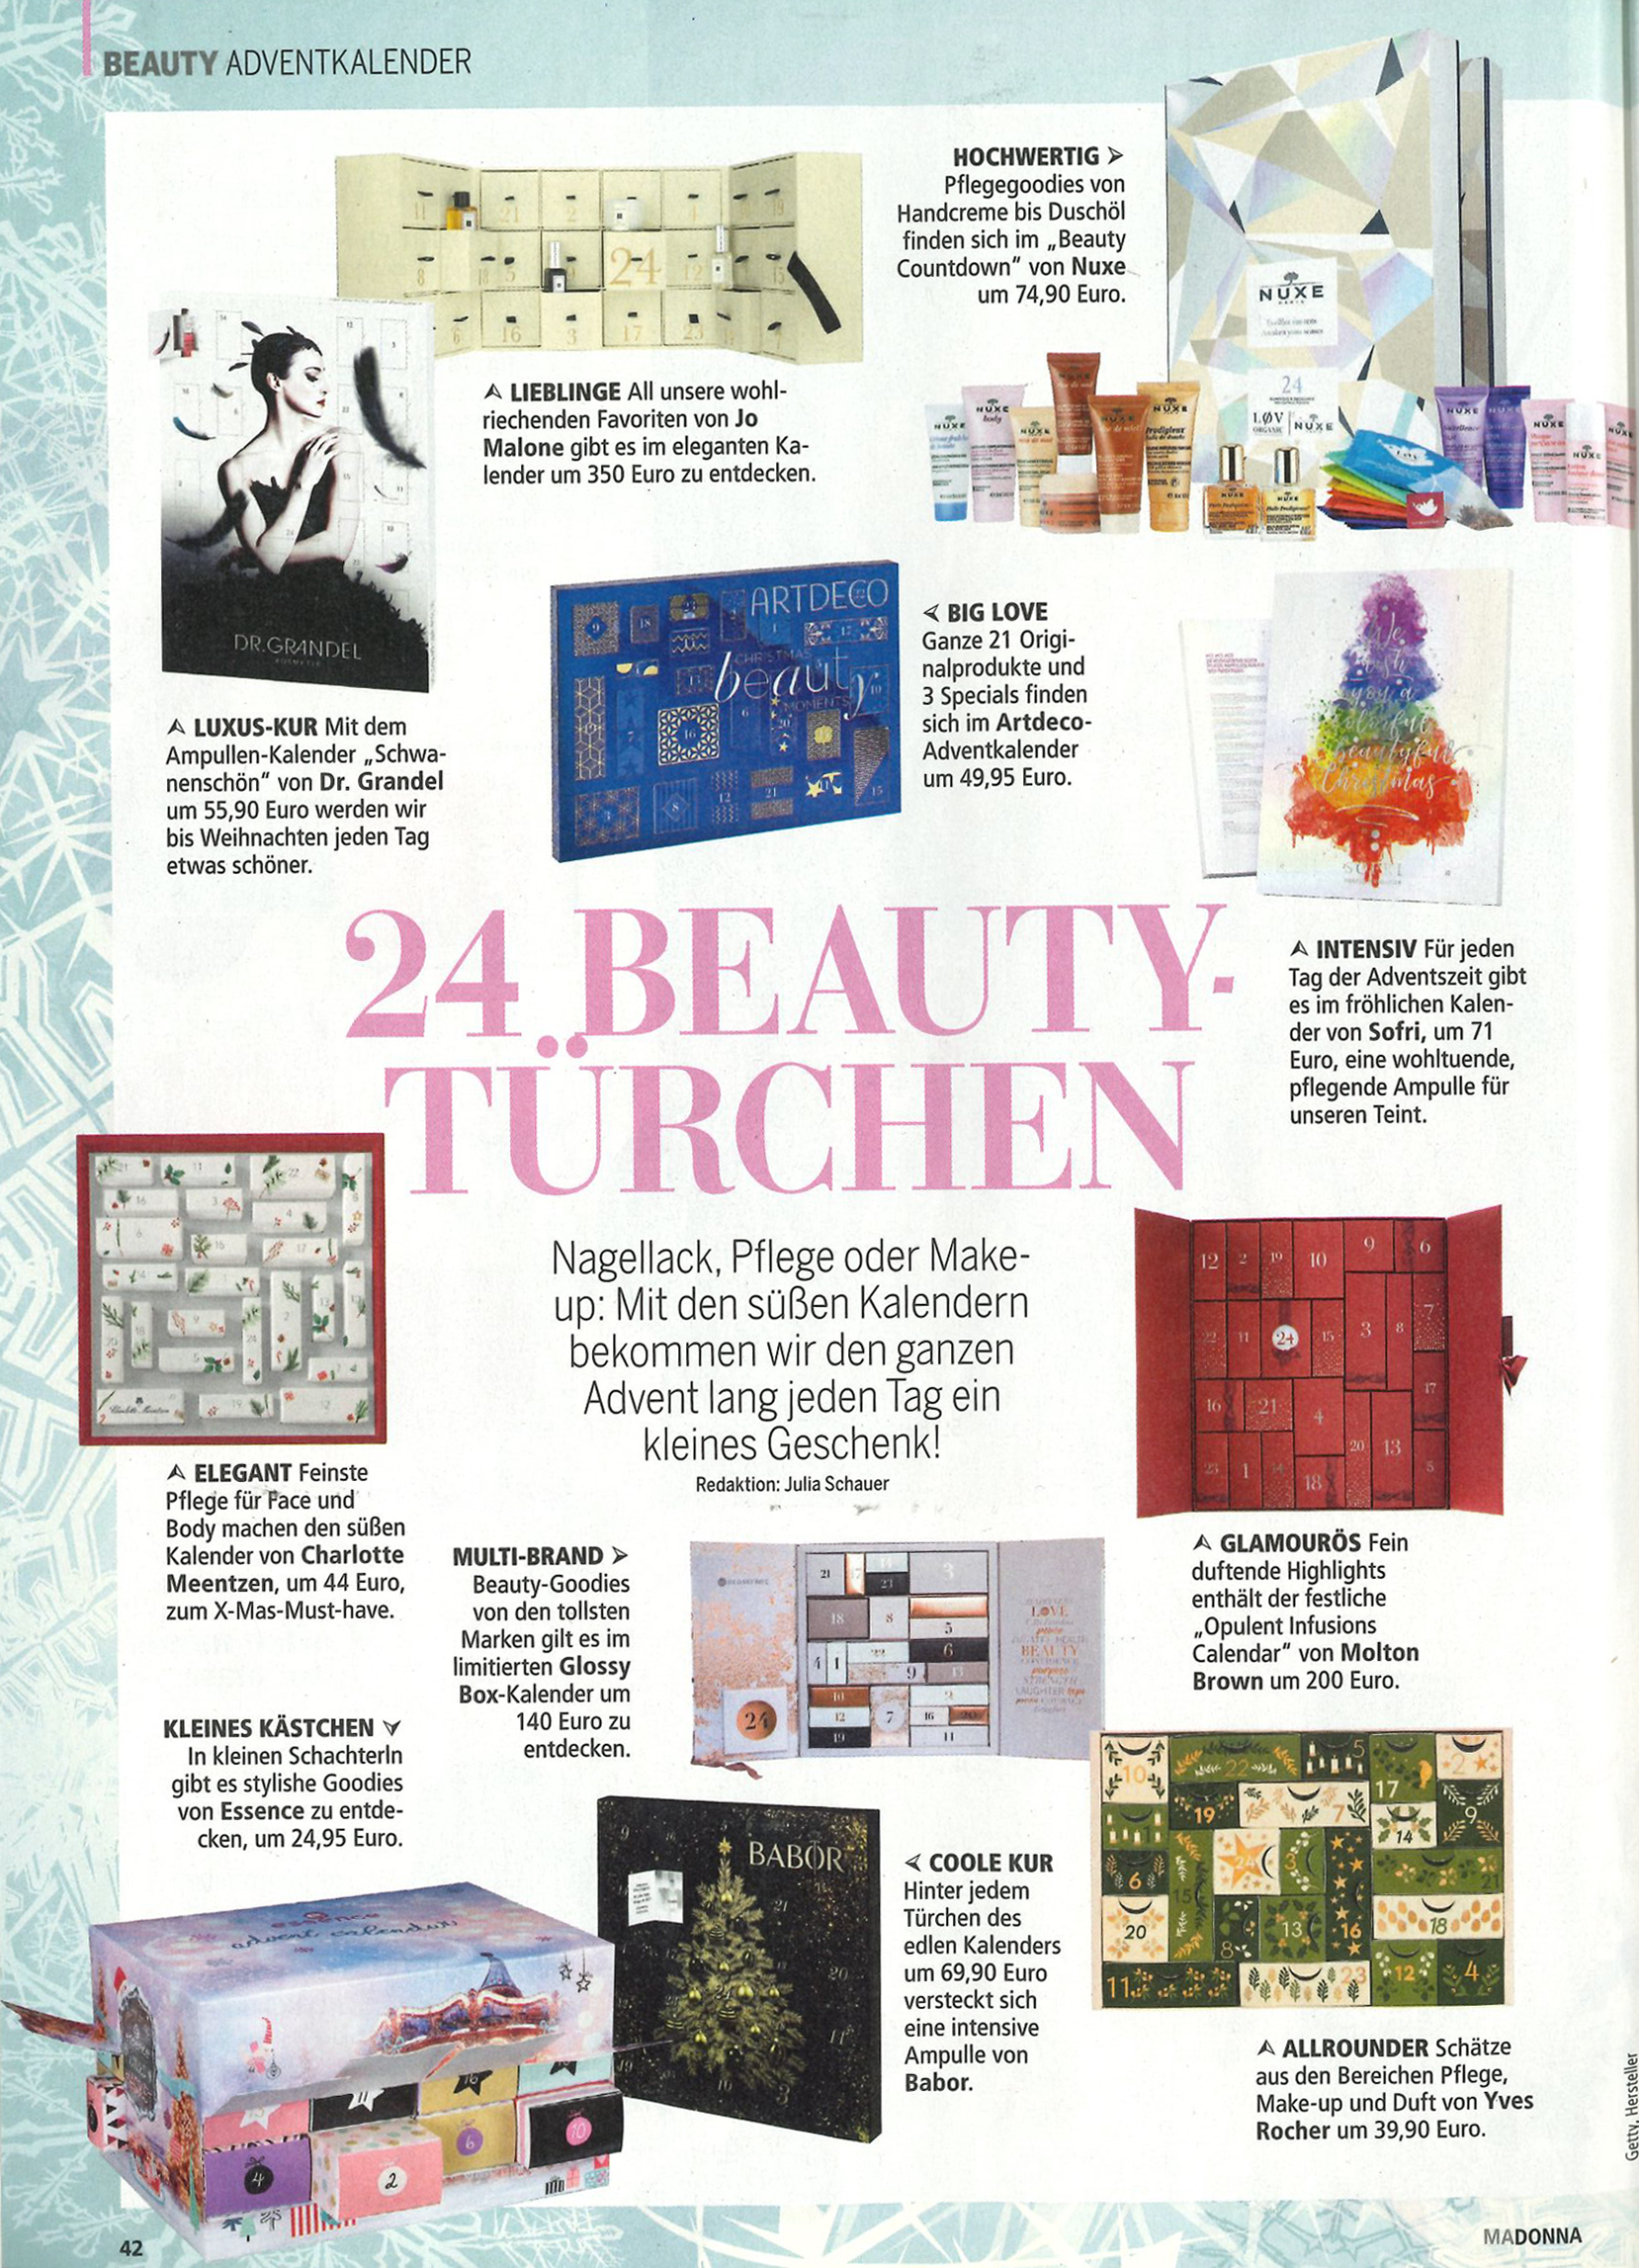 24 Beauty-Türchen, Madonna im November 2018